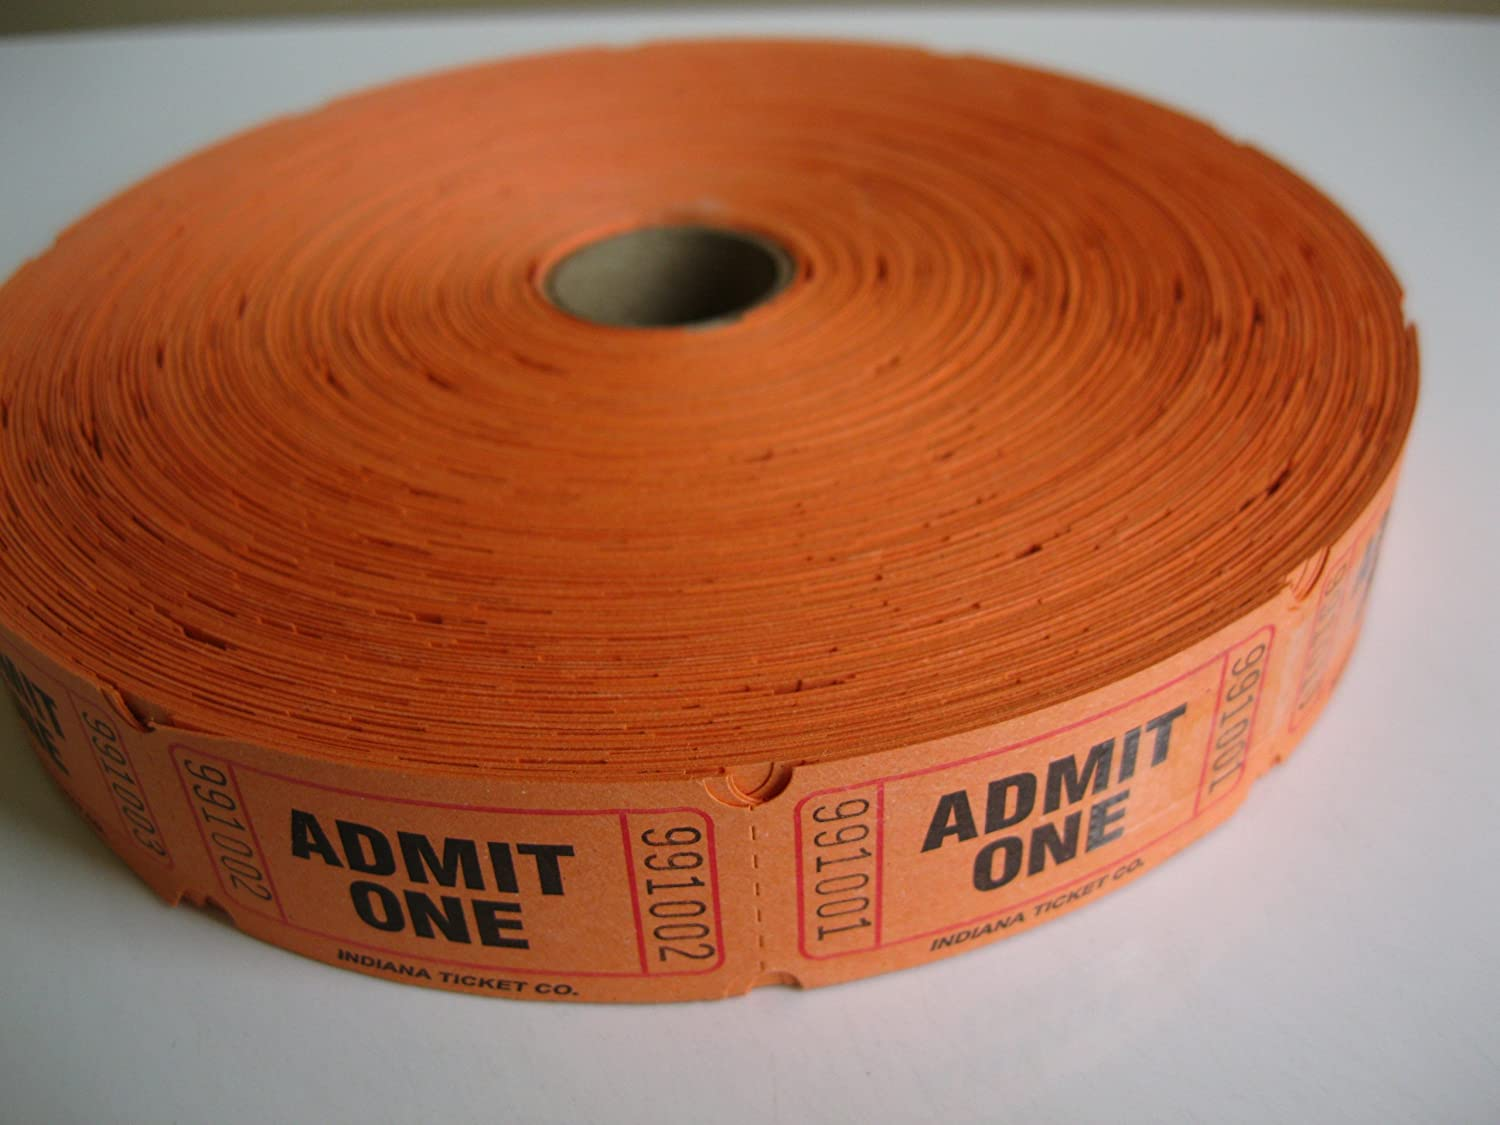 2000 Orange Admit One Single Roll Consecutively Numbered Raffle Tickets